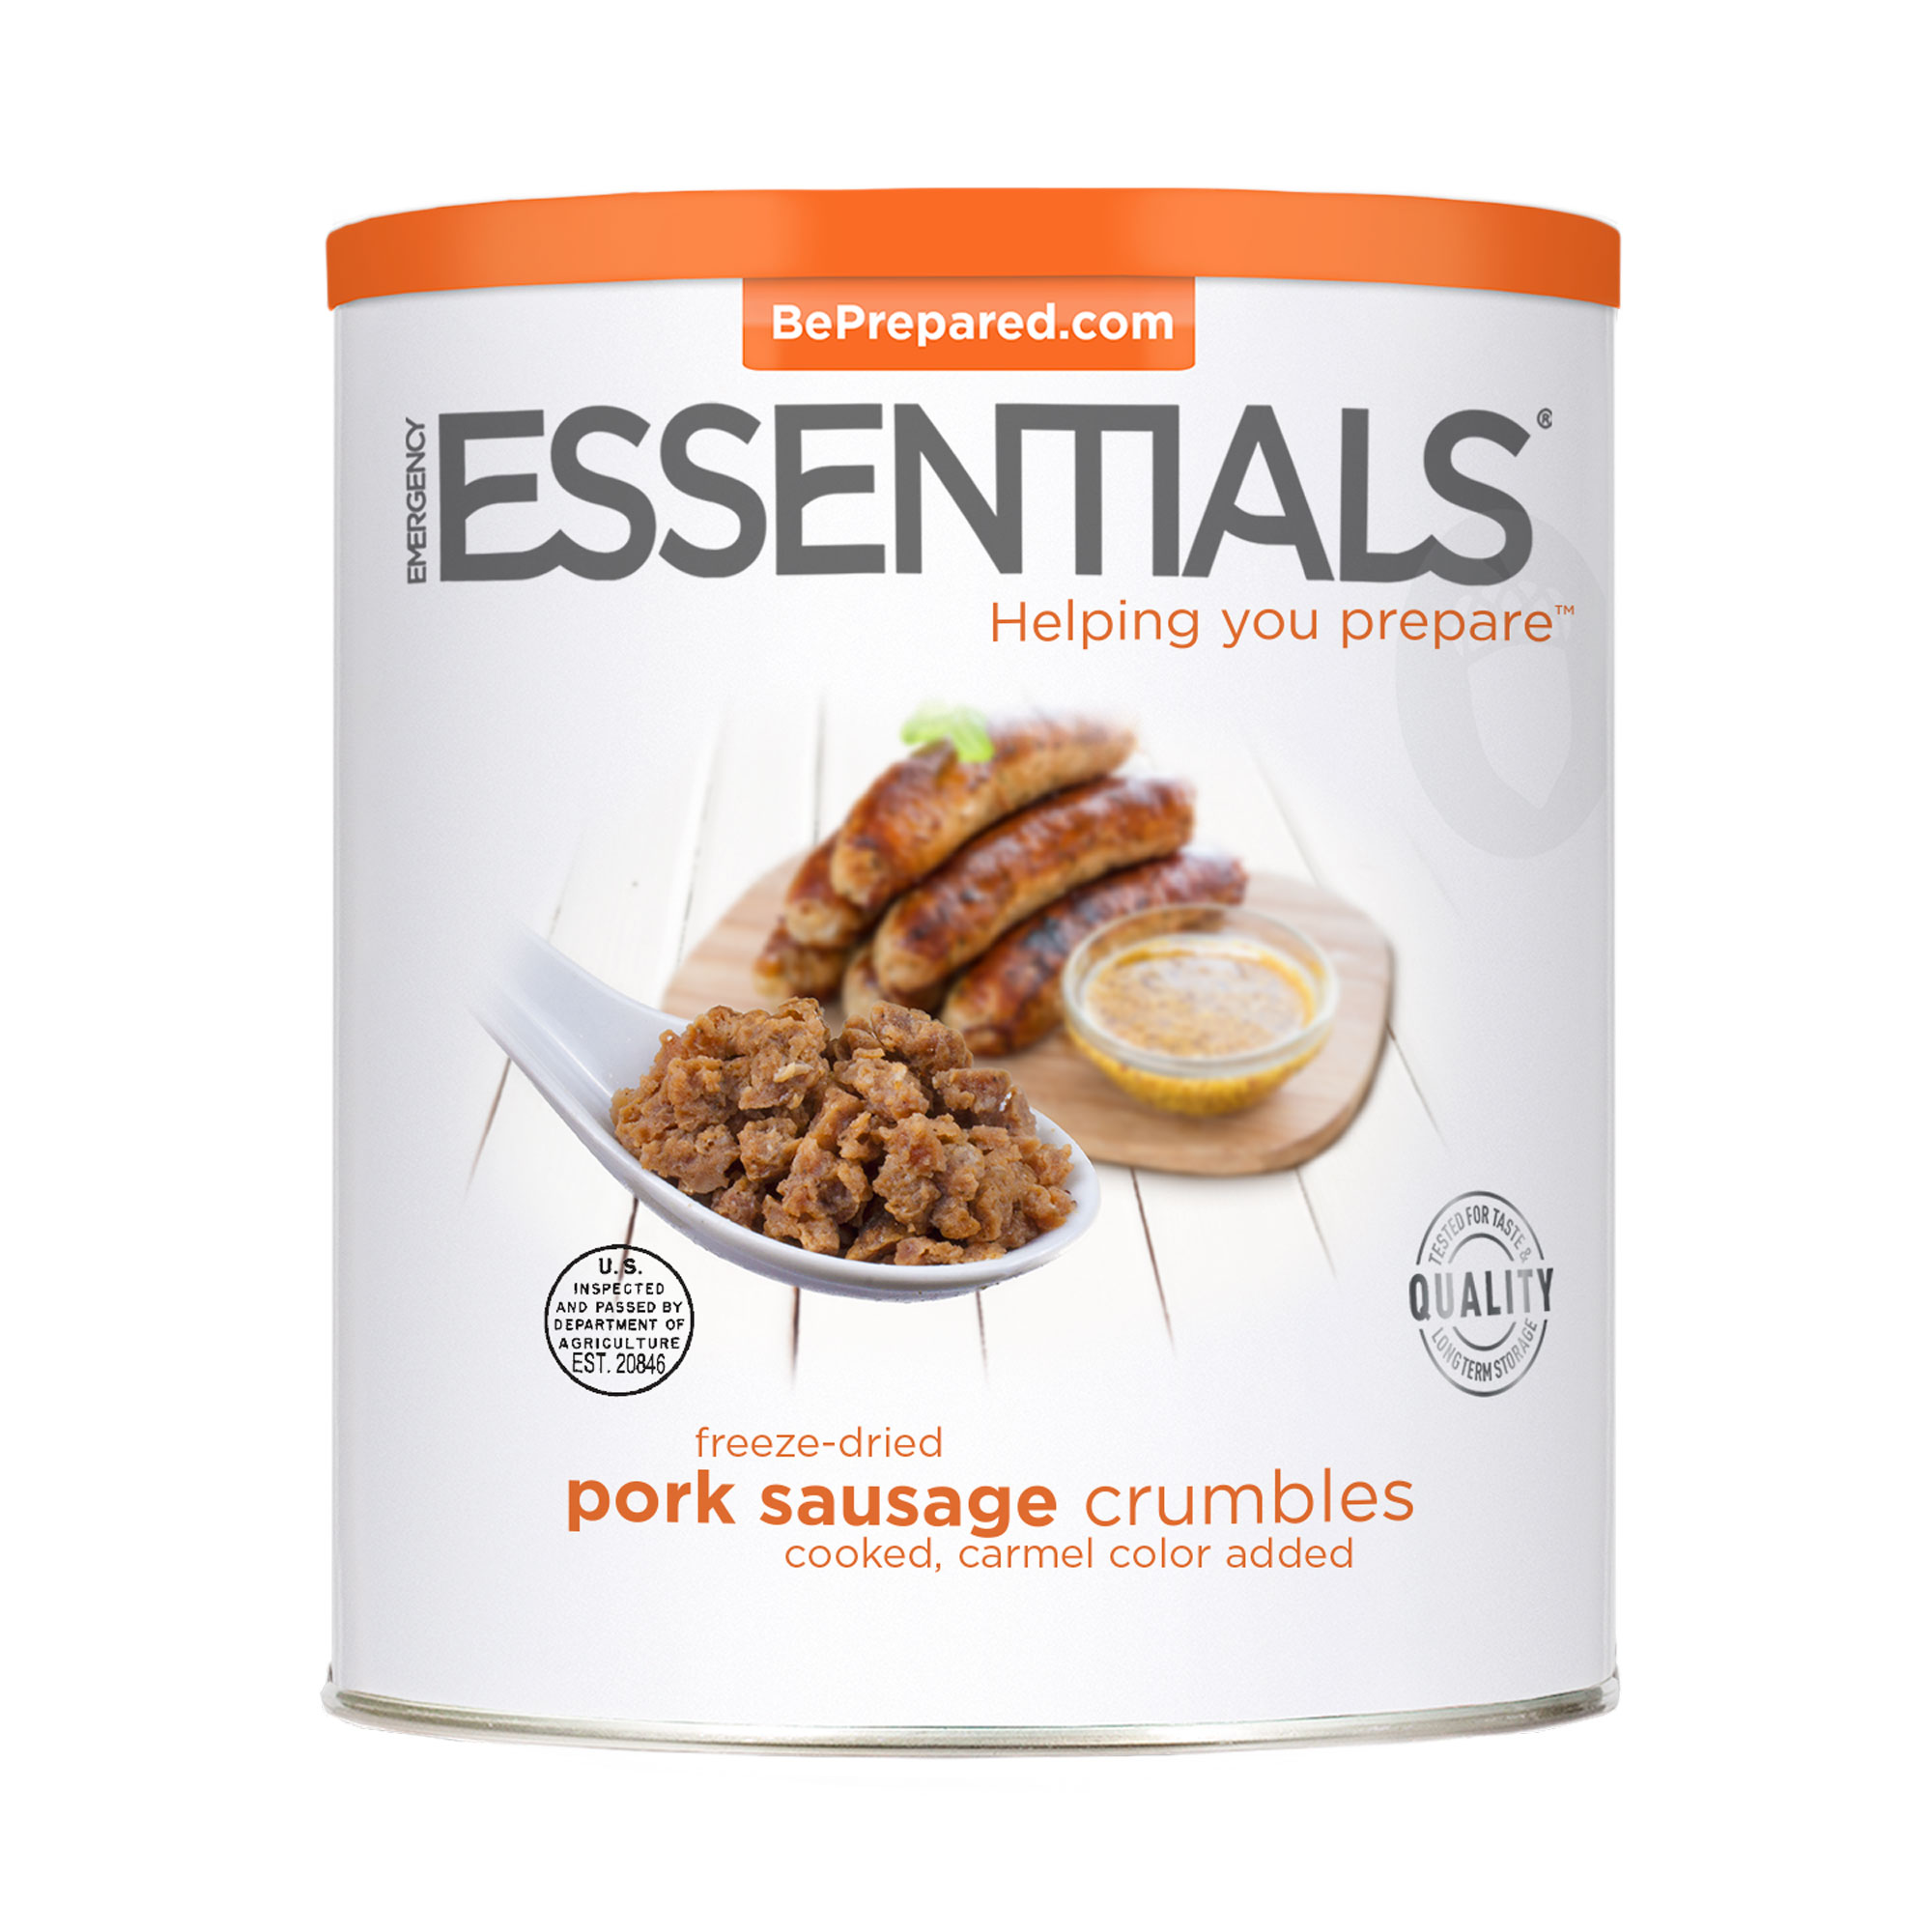 FD Pork Sausage Crumbles #10 Can by Emergency Essentials